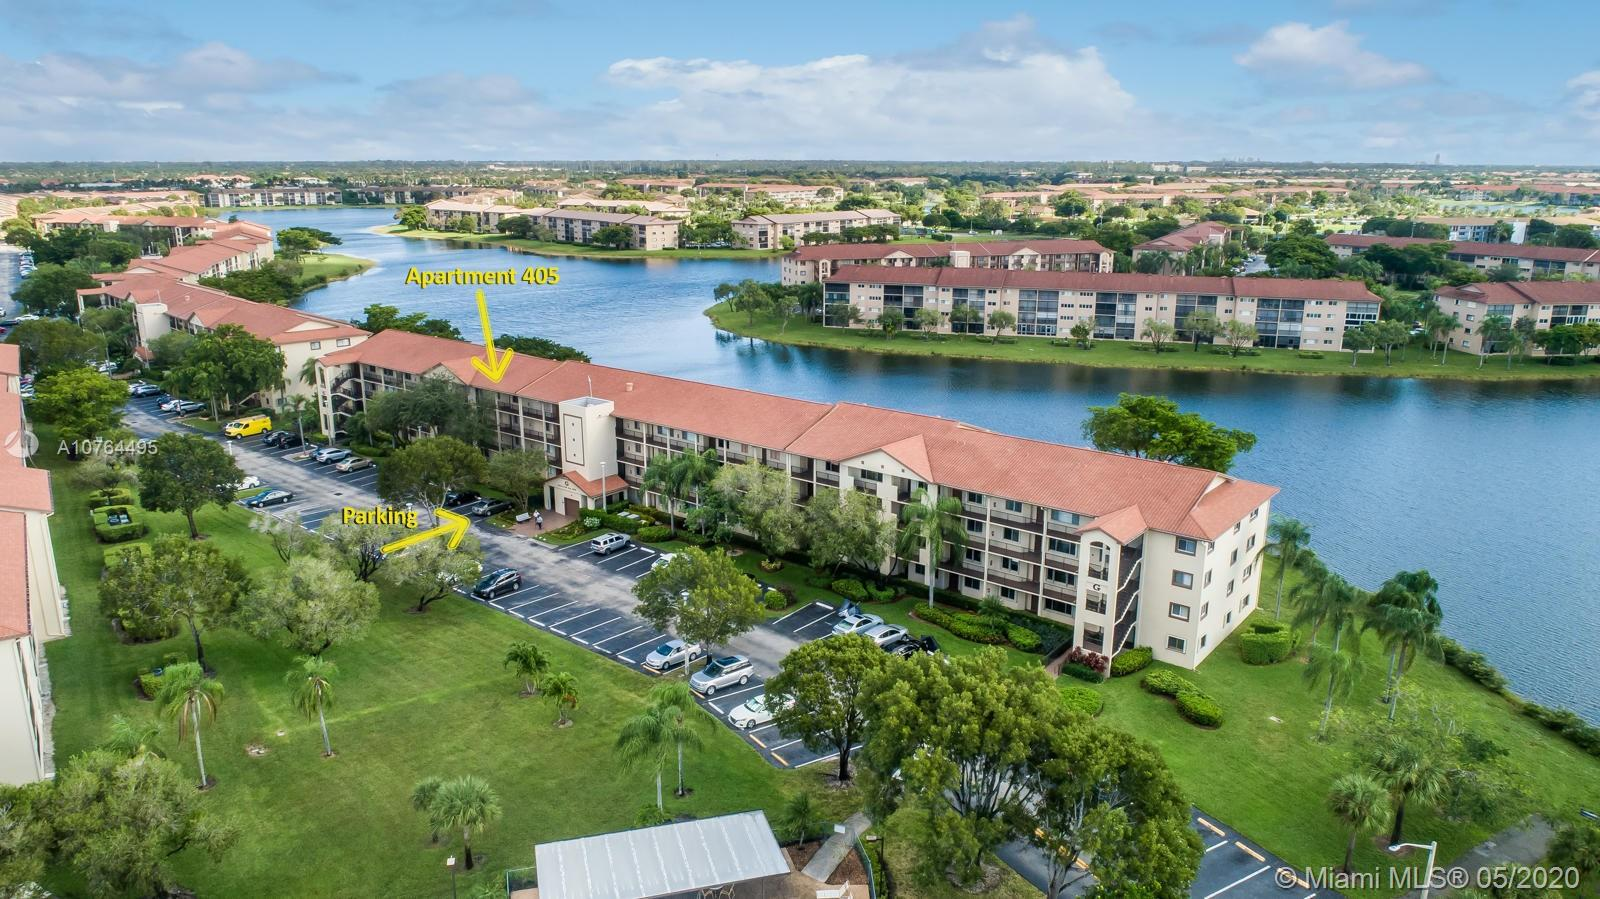 LOCATION, LOCATION, LOCATION!!! FANTASTIC TOP 4TH FLOOR 2/1.5 CONDO WITH STUNNING LAKE VIEWS IN THE NEWER SECTION OF SUFFOLK. CLOSE AND CONVENIENT TO MAIN ENTRANCE OF CENTURY VILLAGE. PERGO FLOOR THROUGHOUT, BRAND NEW A/C, ELECTRIC RANGE, DISHWASHER MICROWAVE, WASHER AND DRYER. MASTER BATHROOM IS HANDICAPPED EQUIPPED AND MASTER BEDROOM HAS MOTION SENSOR LIGHTING. ASSIGNED PARKING SPOT IS IMMEDIATELY ADJACENT TO MAILBOXES AND ELEVATOR AND CLOSEST BUILDING TO HEALTH CLUB/GYM. ELEVATOR AND ROOF HAVE RECENTLY BEEN REDONE IN BUILDING. COMMUNITY OFFERS: WATER, CABLE AND AMENITIES SUCH AS GYM, BILLIARD ROOM, TENNIS, HEATED POOL, GOLF, THEATER, CLUBHOUSE, SHOWS.